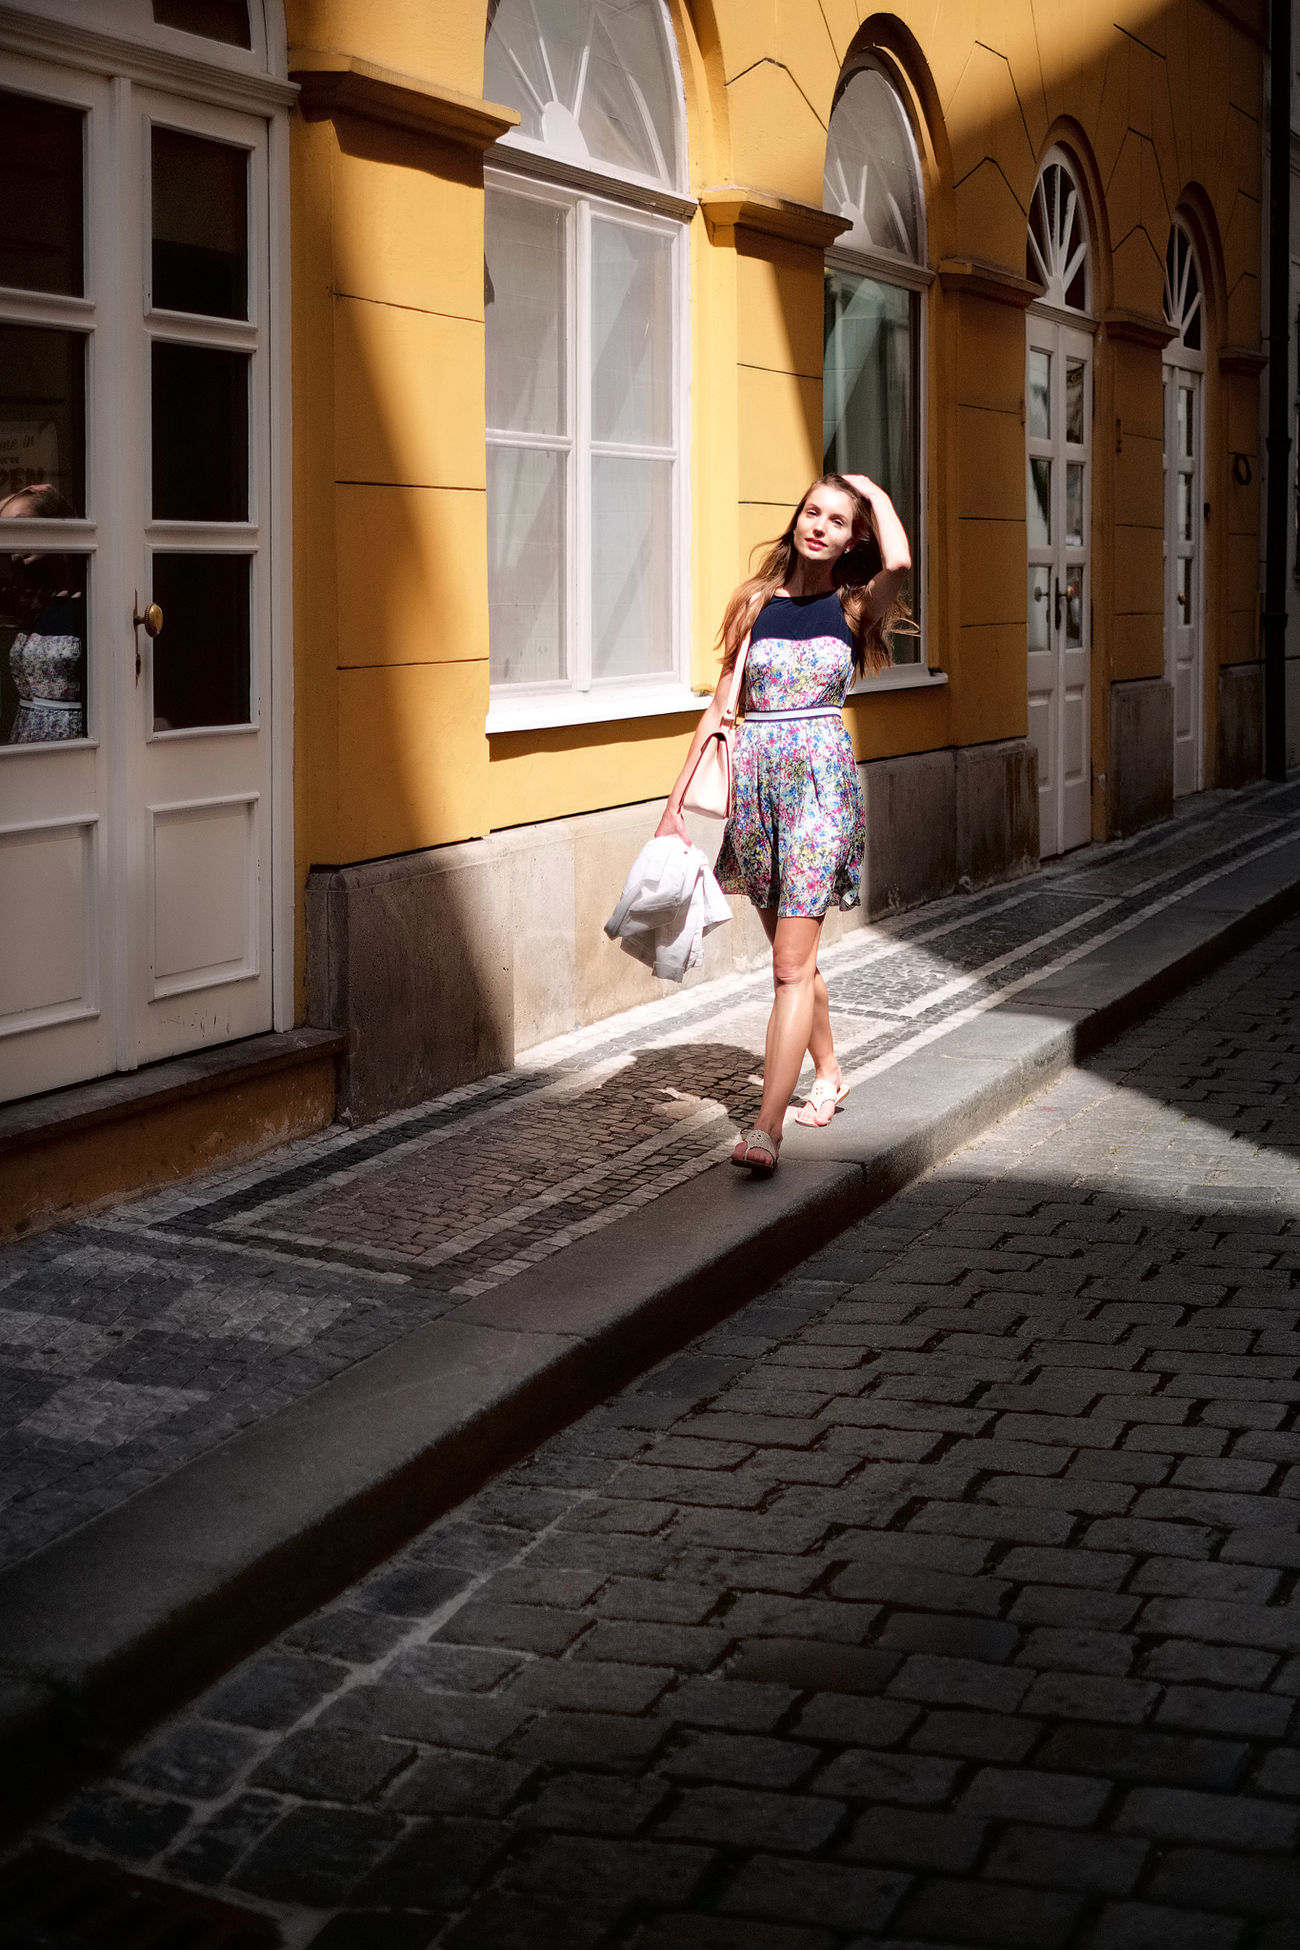 Barbora, Street Fashion Architecture Beautiful Woman Fashion Fashionable Lifestyles Light Light And Shadow One Person Outdoors Real People Street Street Fashion Street Photography Streetphotography Walking Women